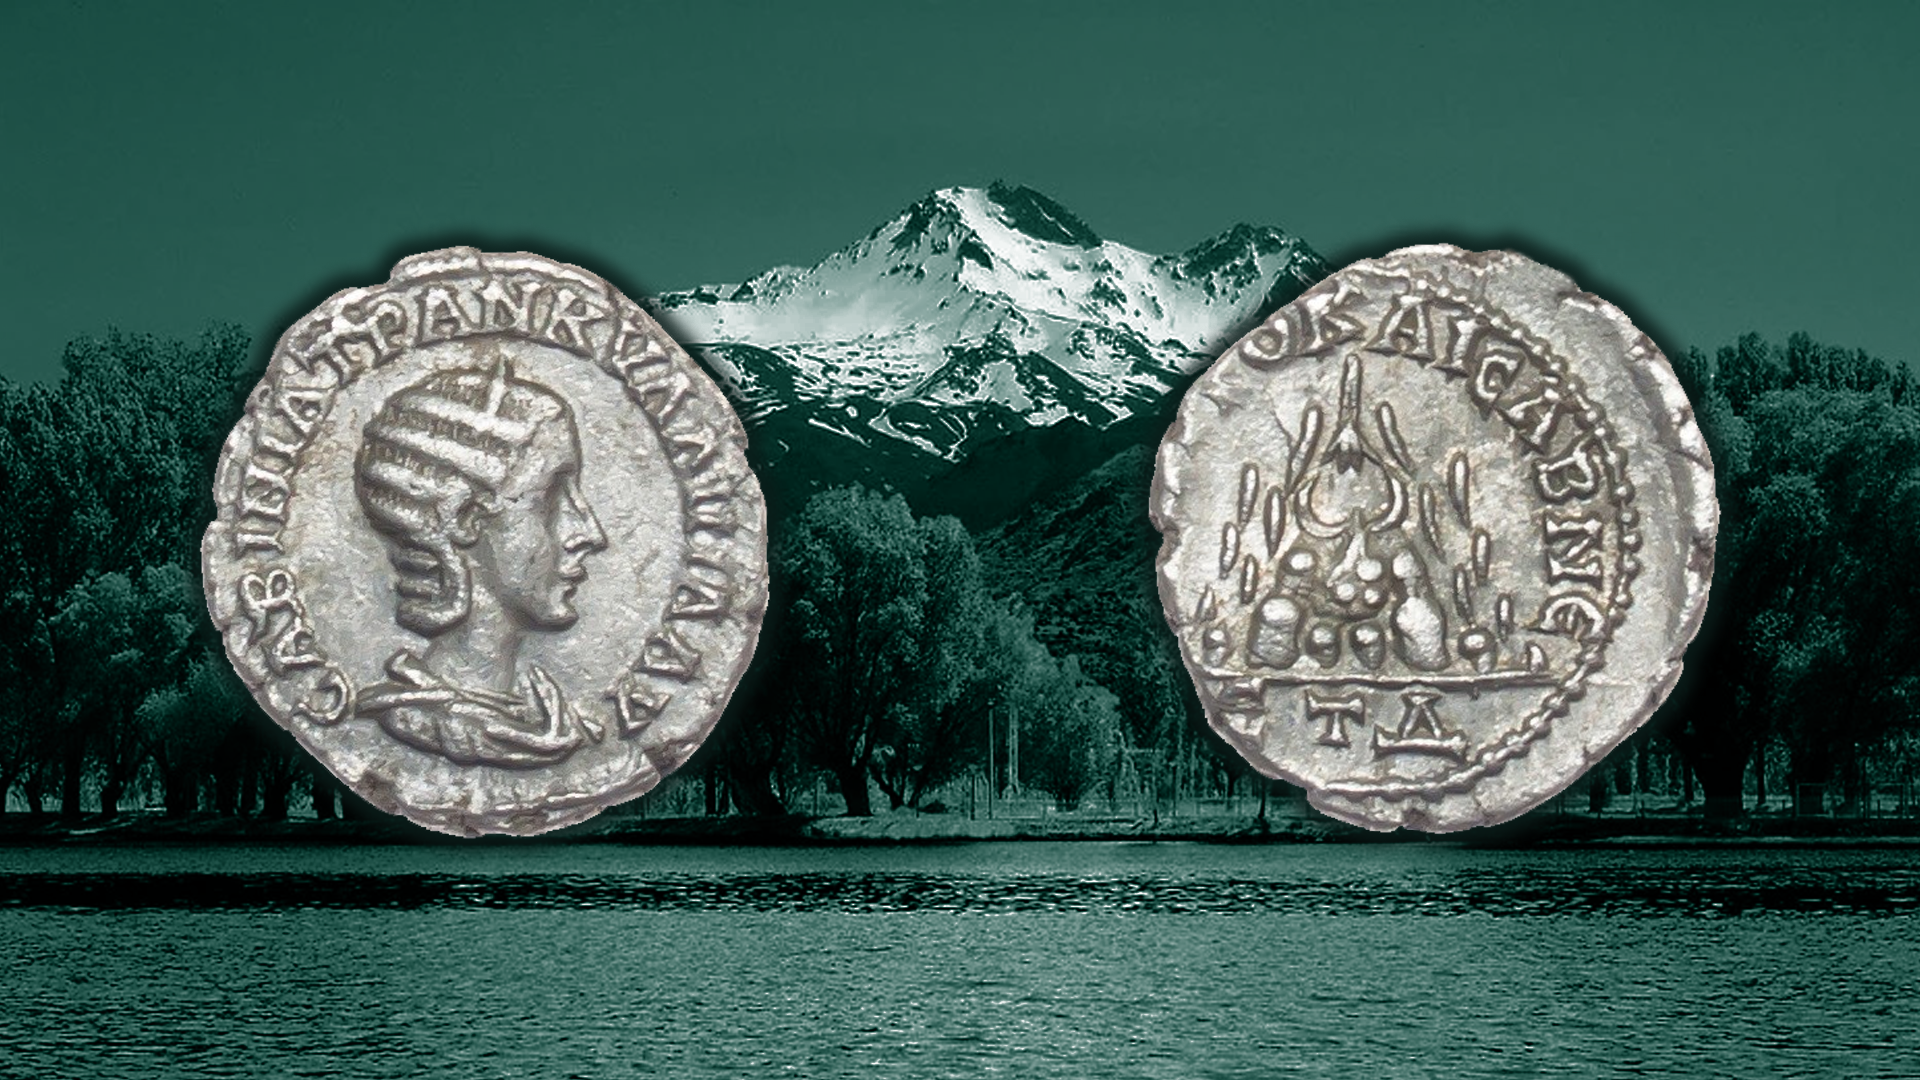 The Silver Drachm of Tranquillina (the wife of Gorian III) coin with Mount Argaeus (Ericyes) from Kayseri in the background.